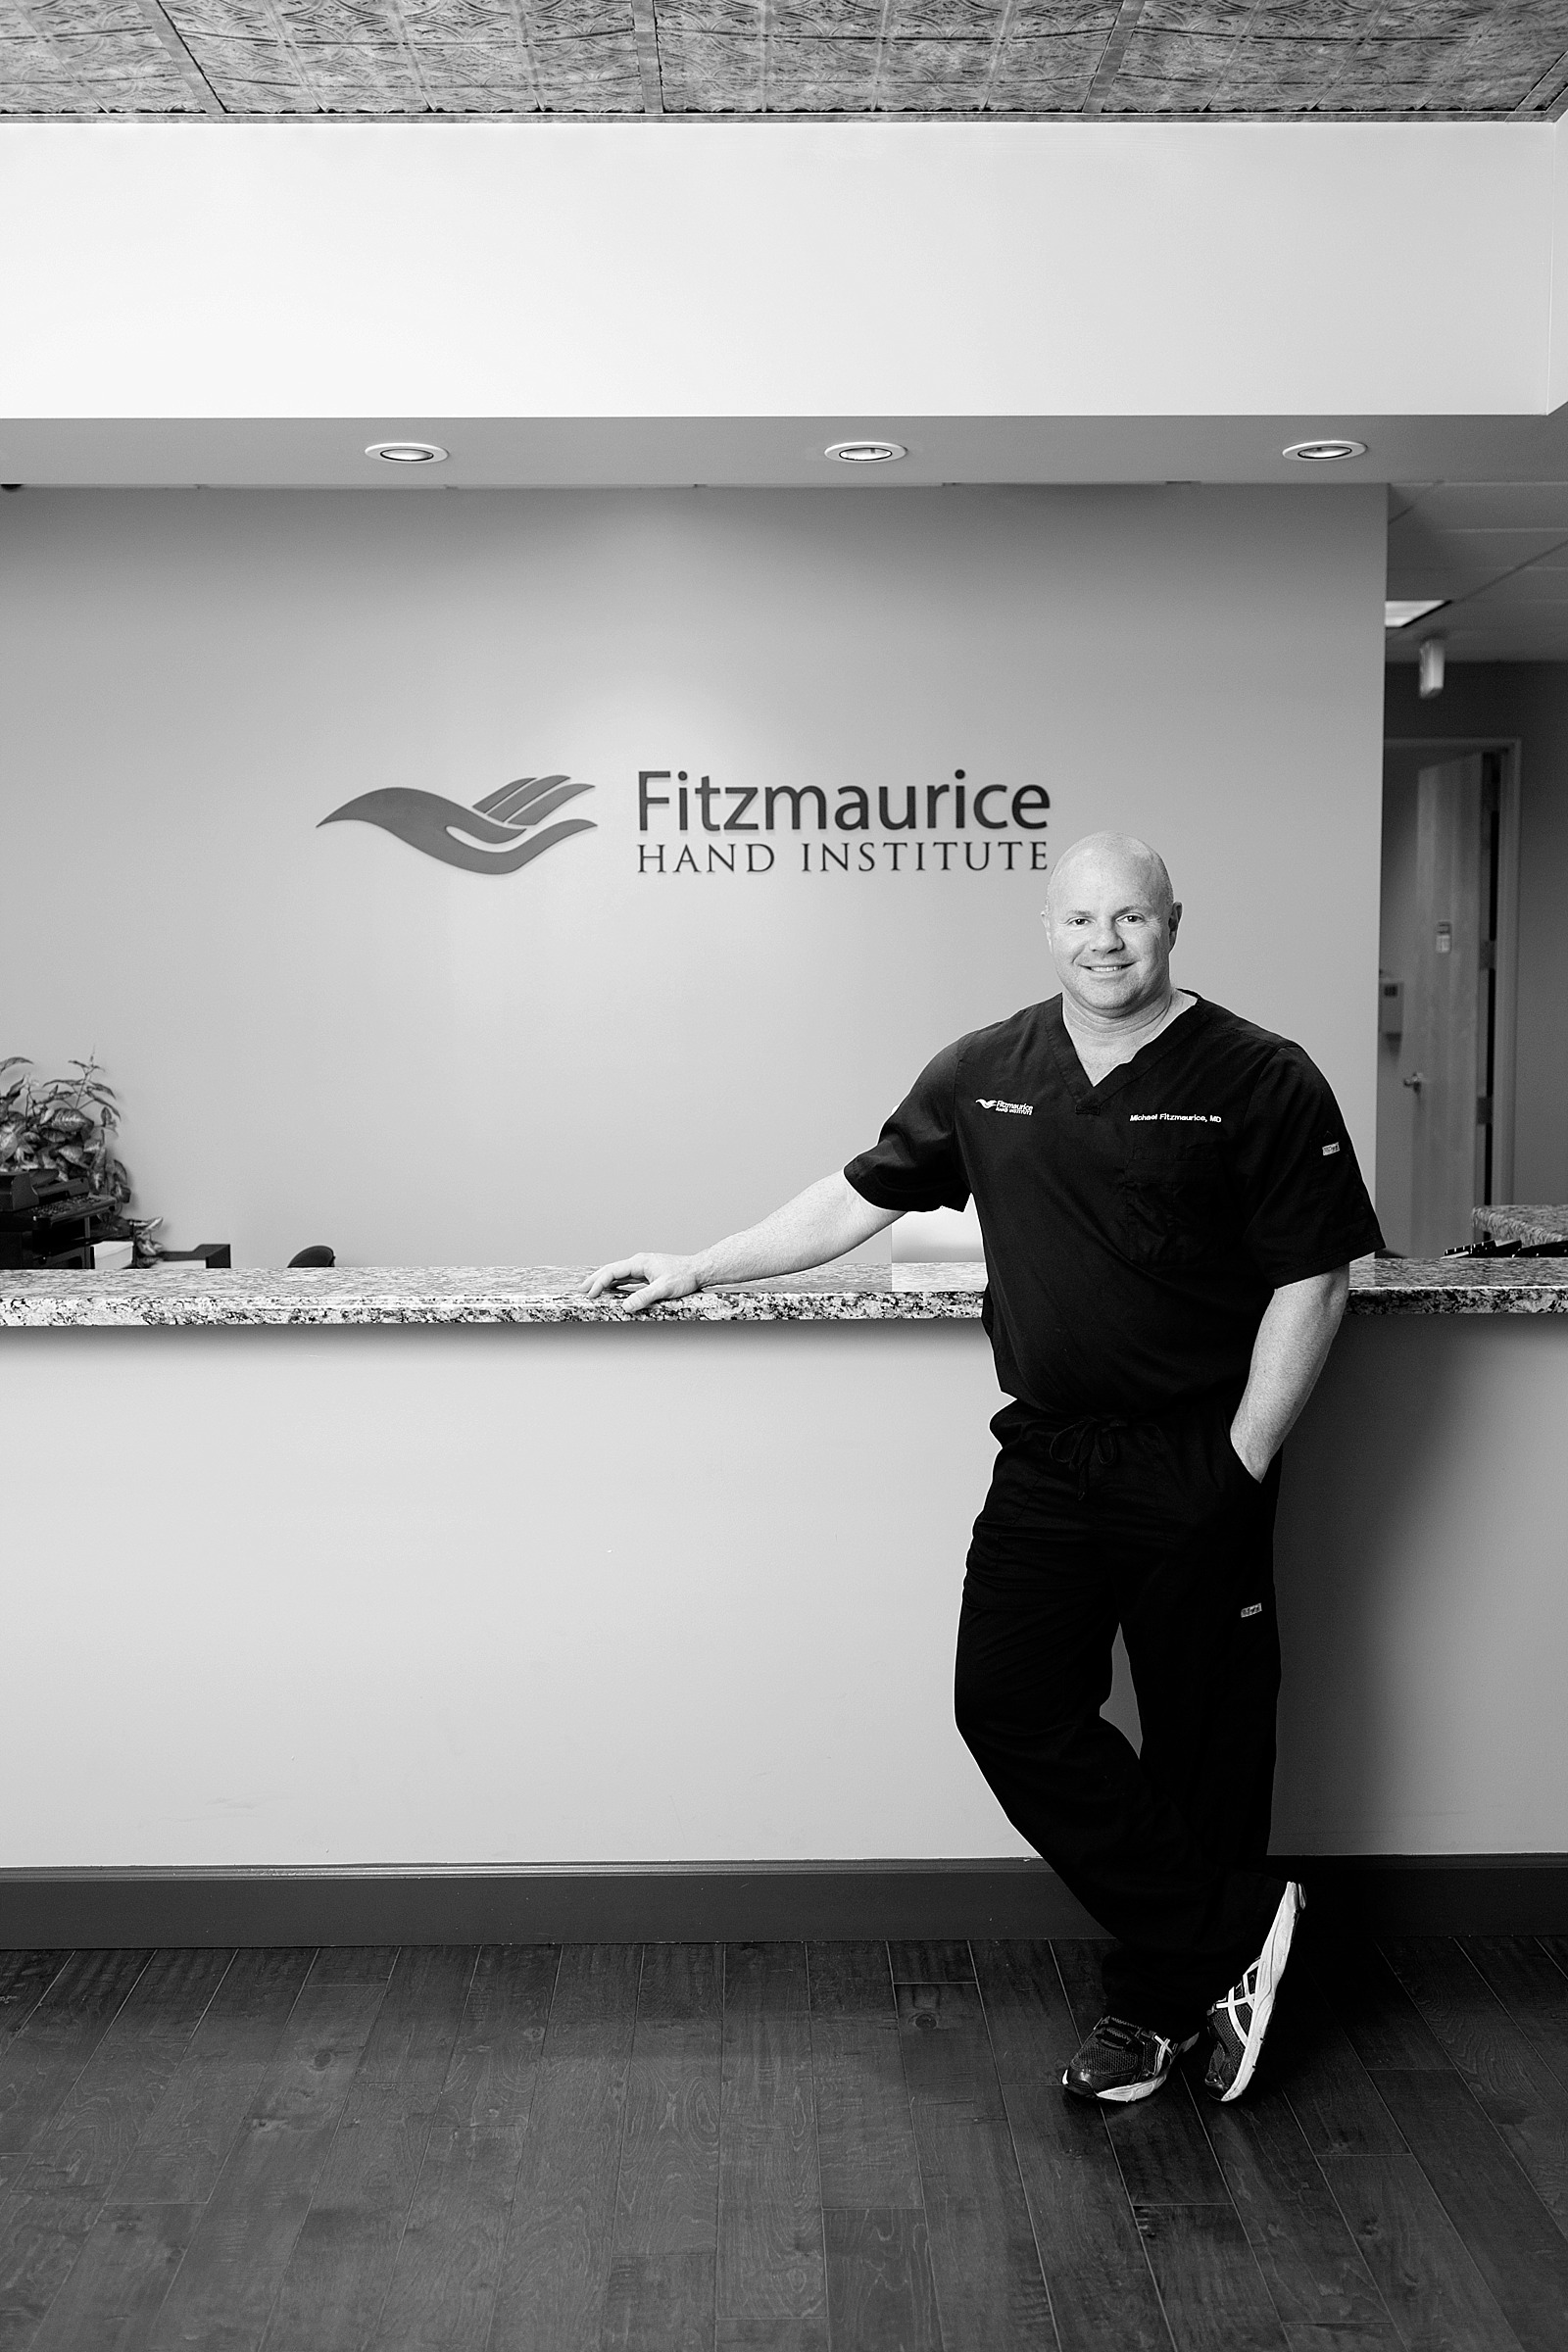 dr-Fitzmaurice-diana-elizabeth-photography-bw-9907